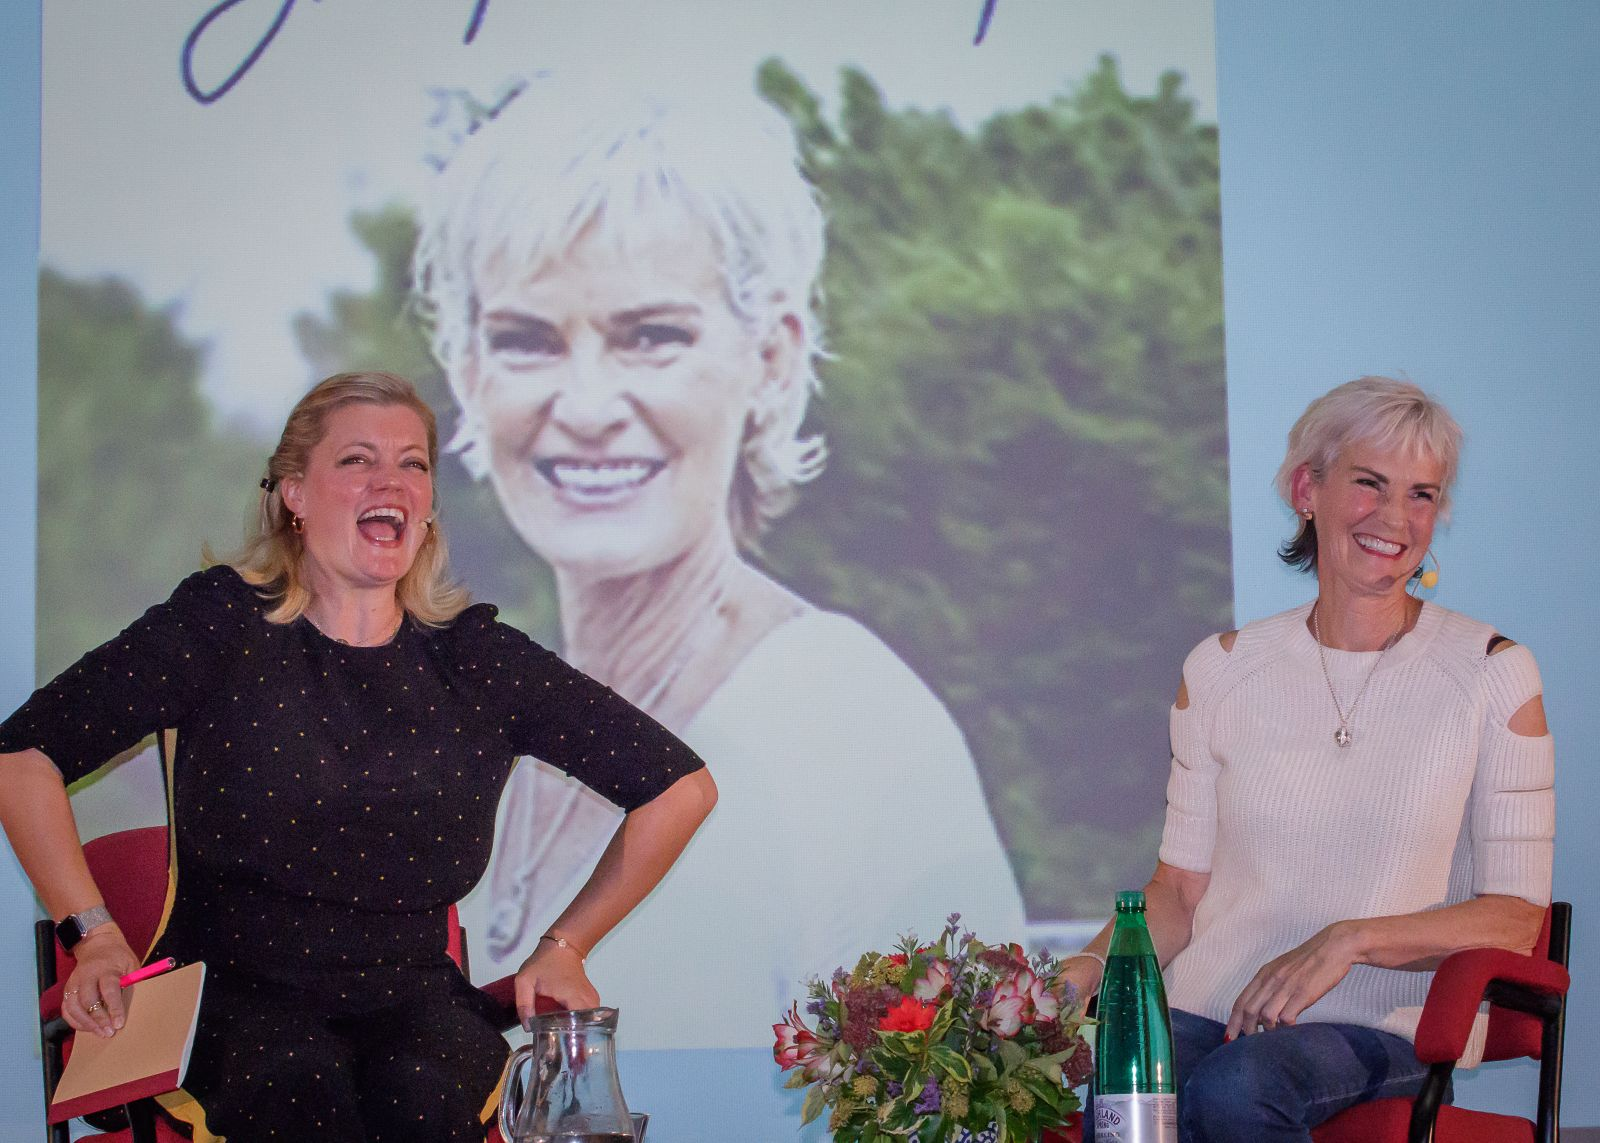 Alexandra Heminsley having fun with Judy Murray